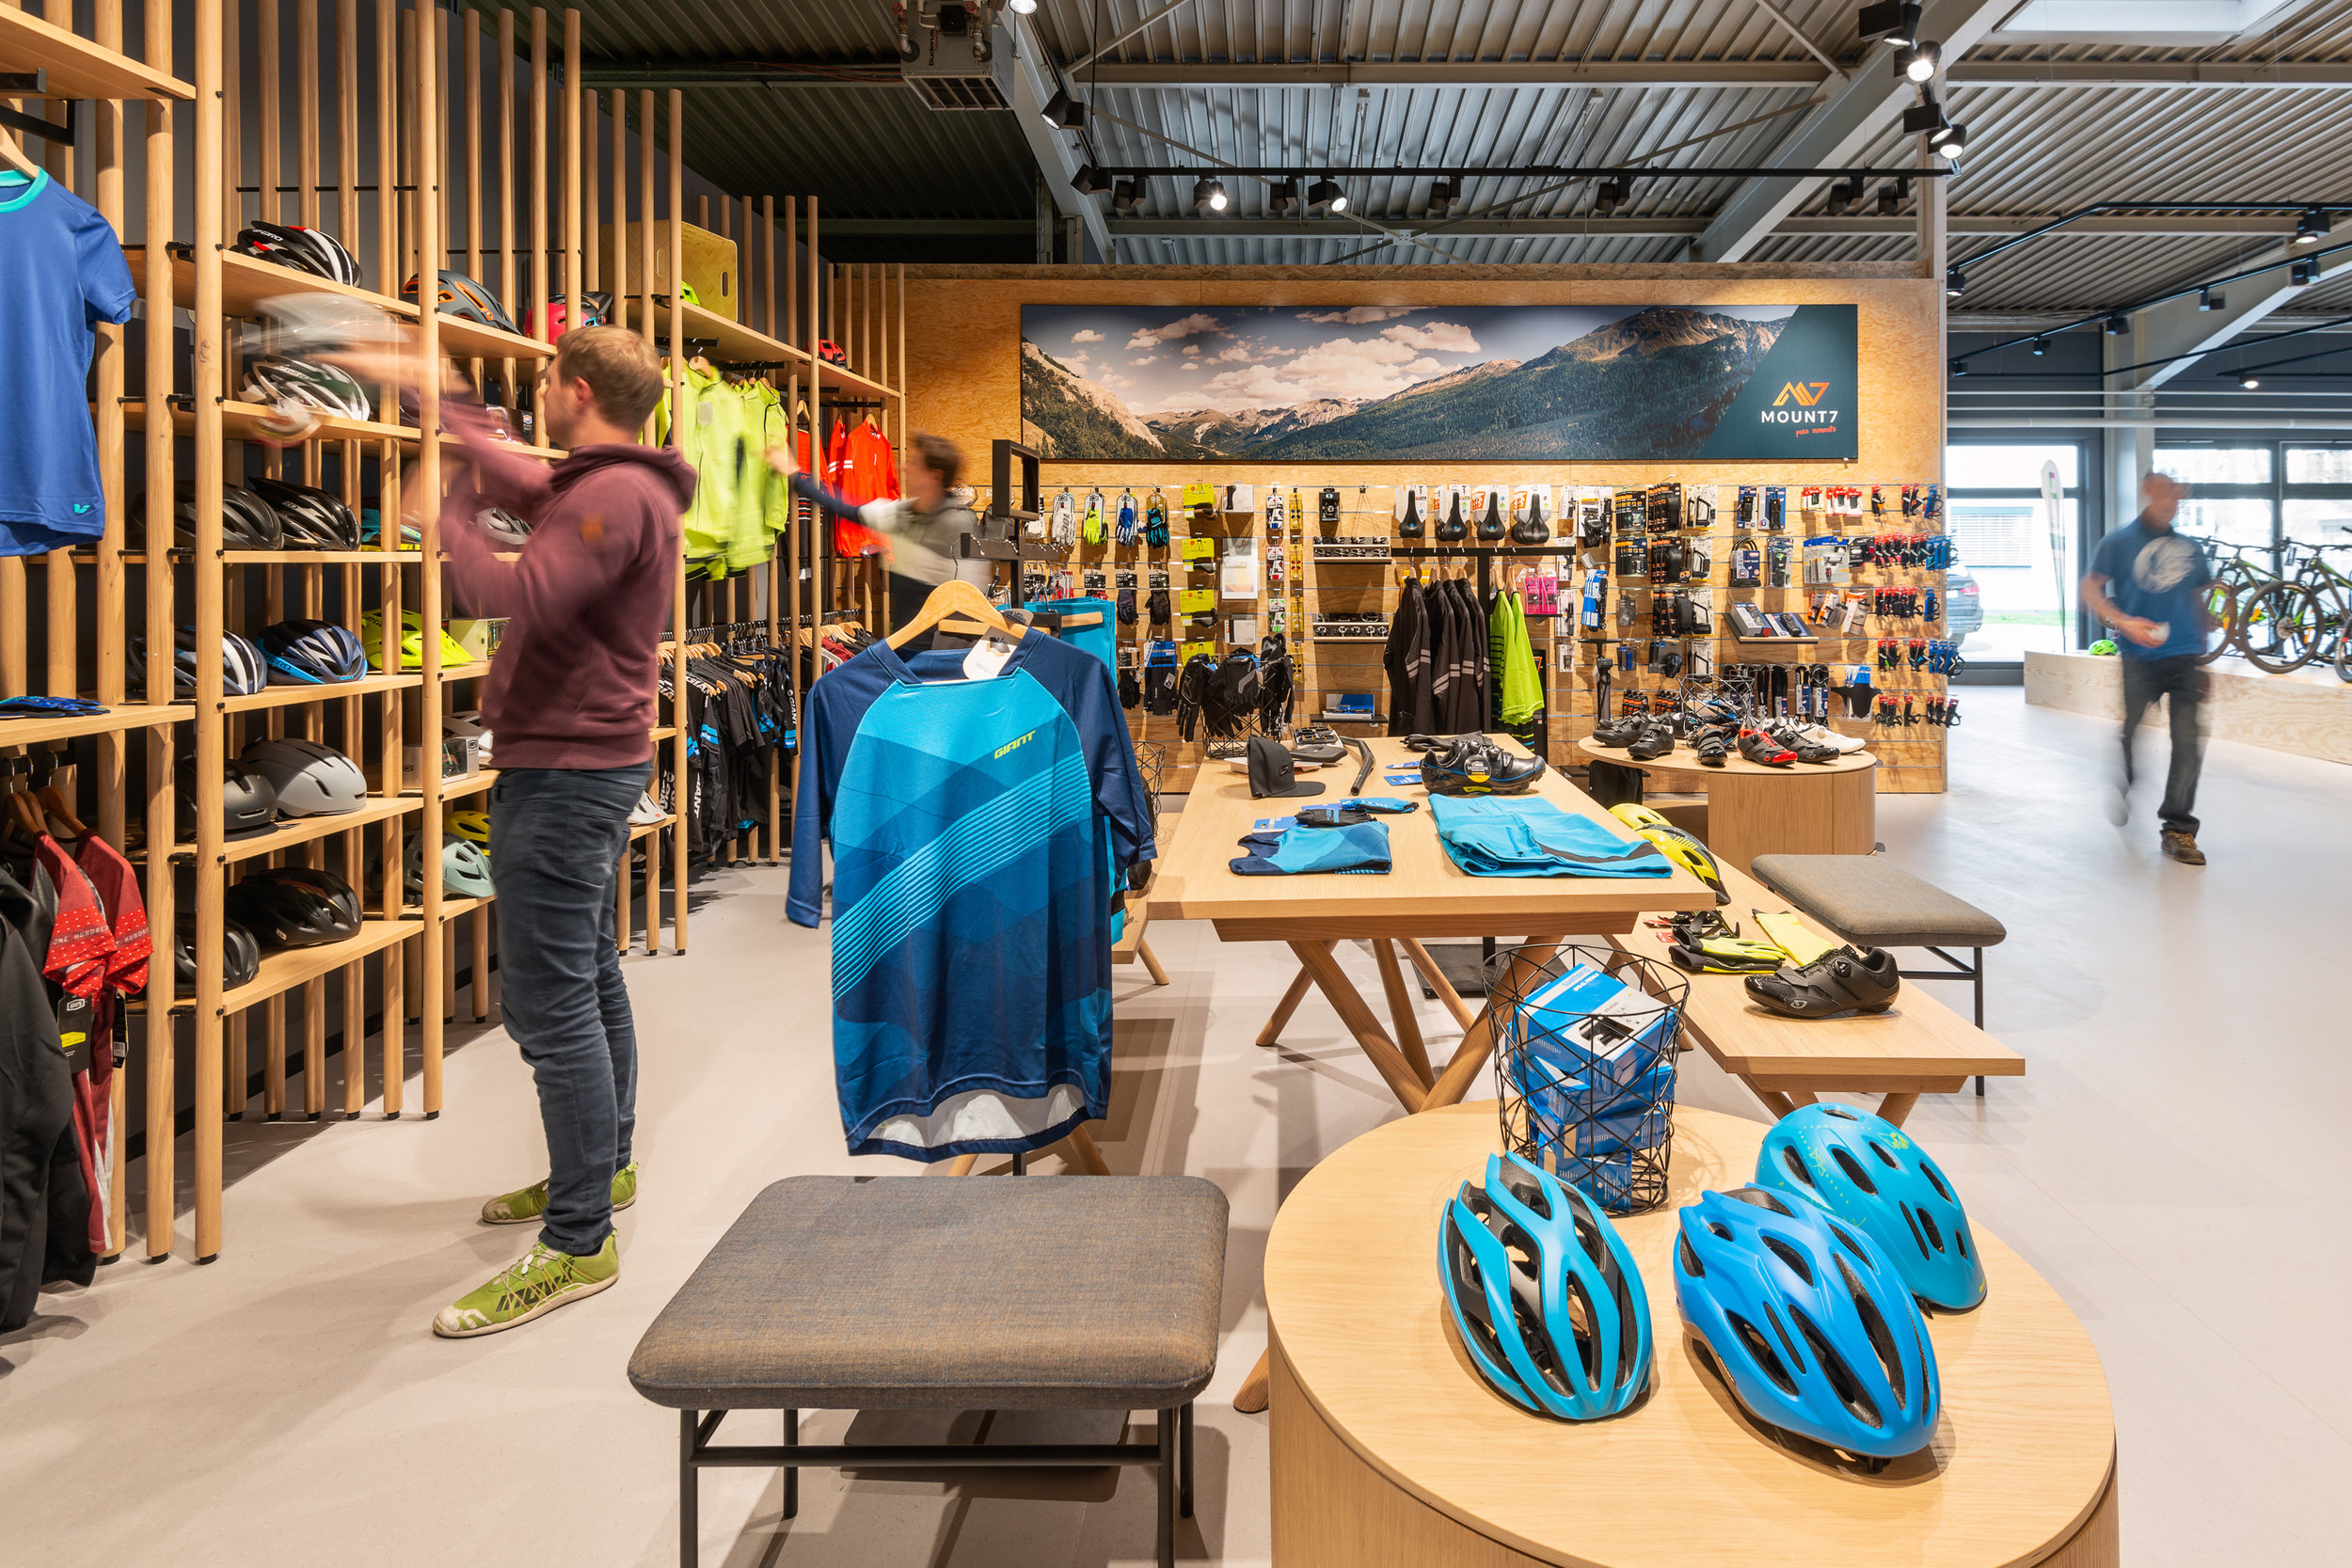 Mount7 & Riesterer Retail Solutions by Tom Bush